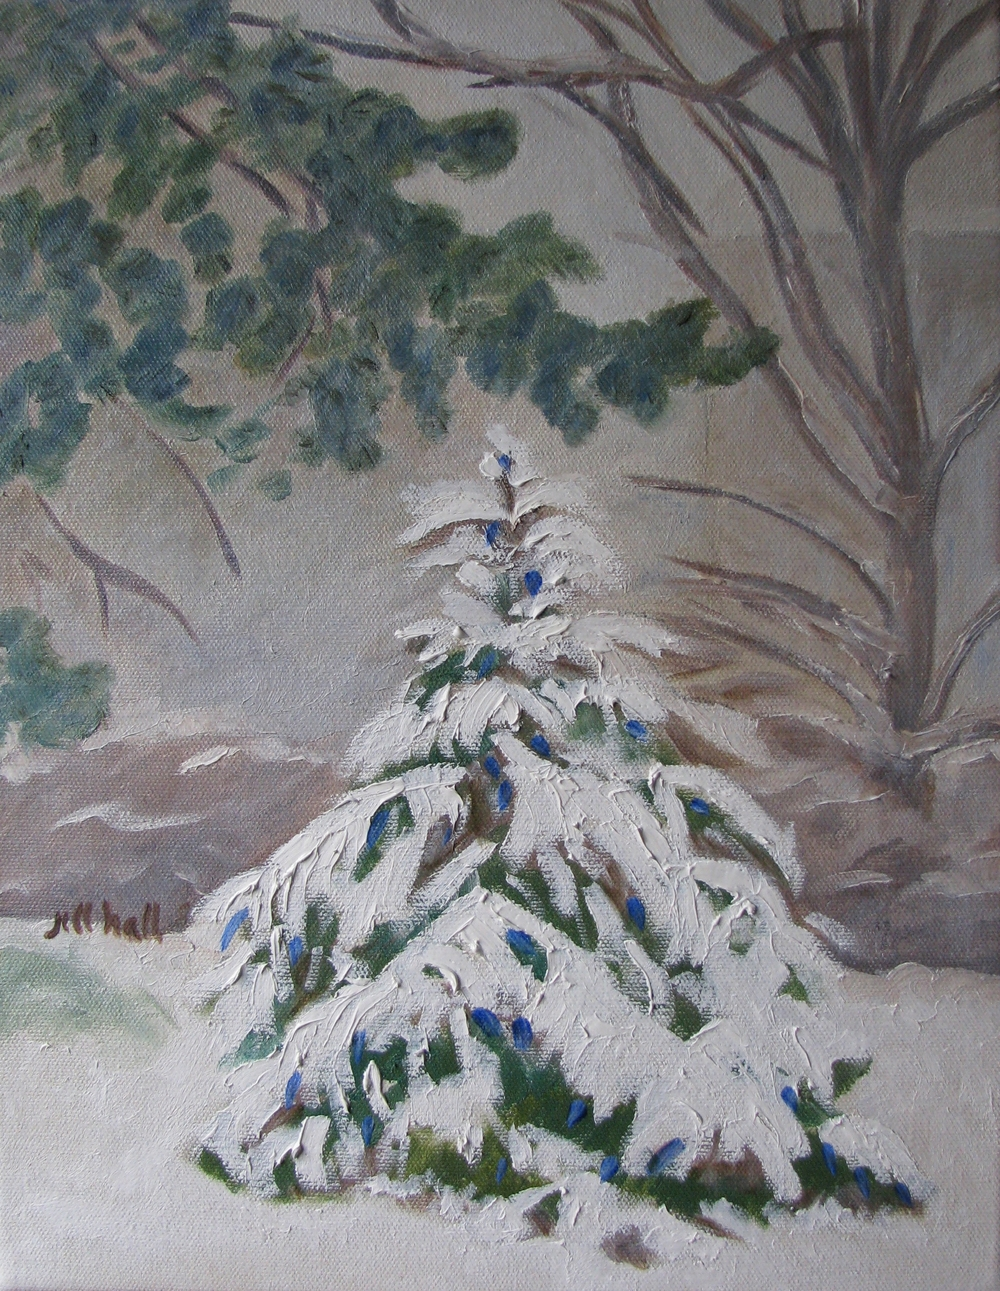 Christmas Tree in Snow - 11x14